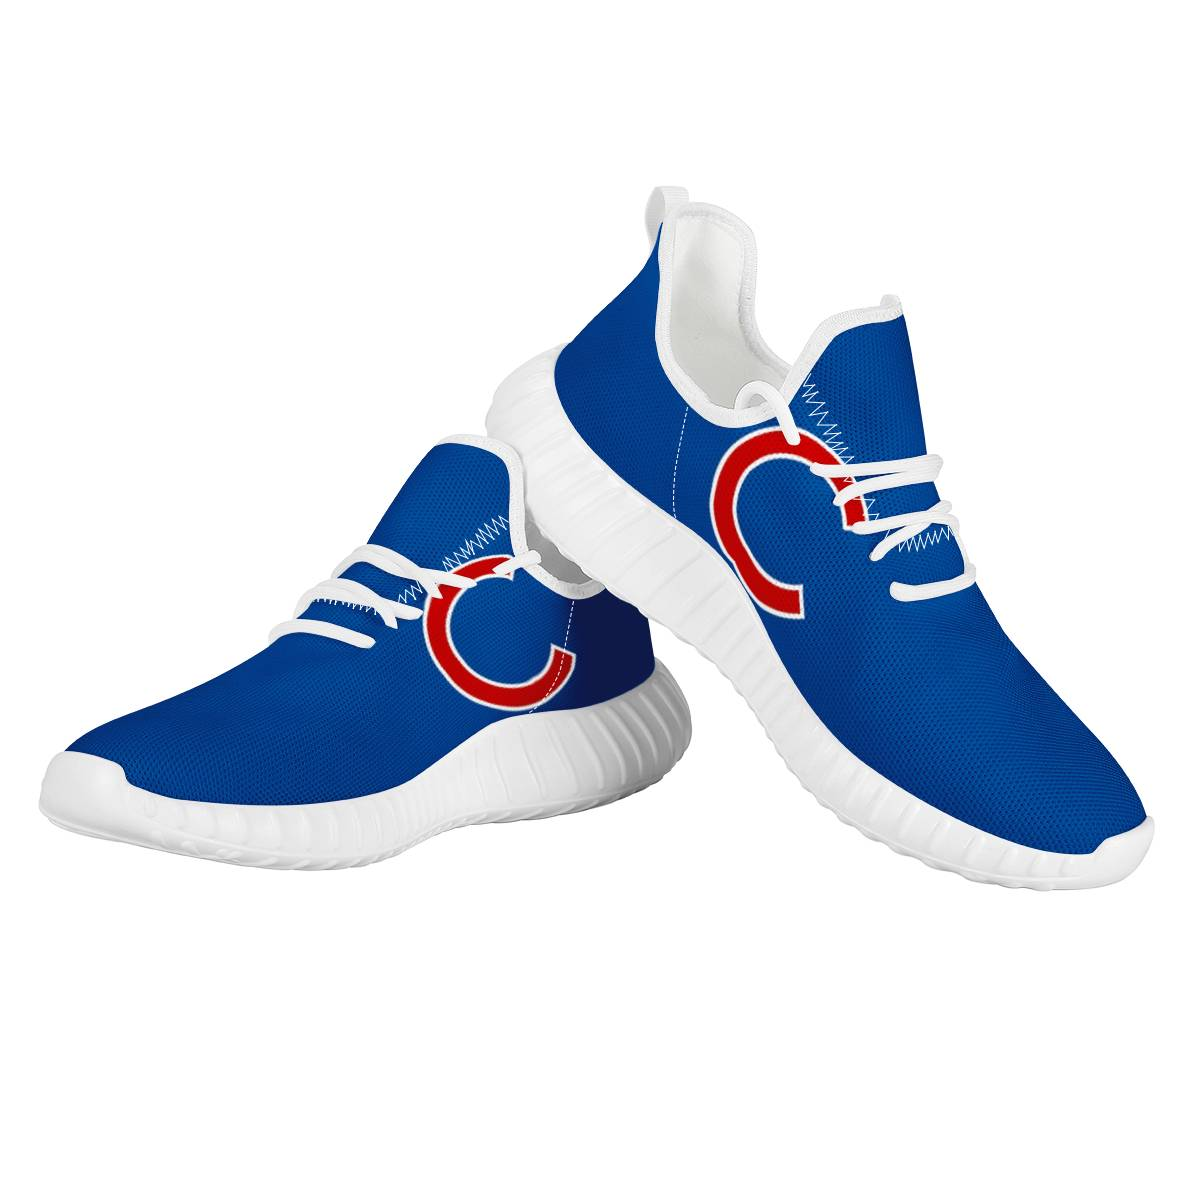 Men's Chicago Cubs Mesh Knit Sneakers/Shoes 010